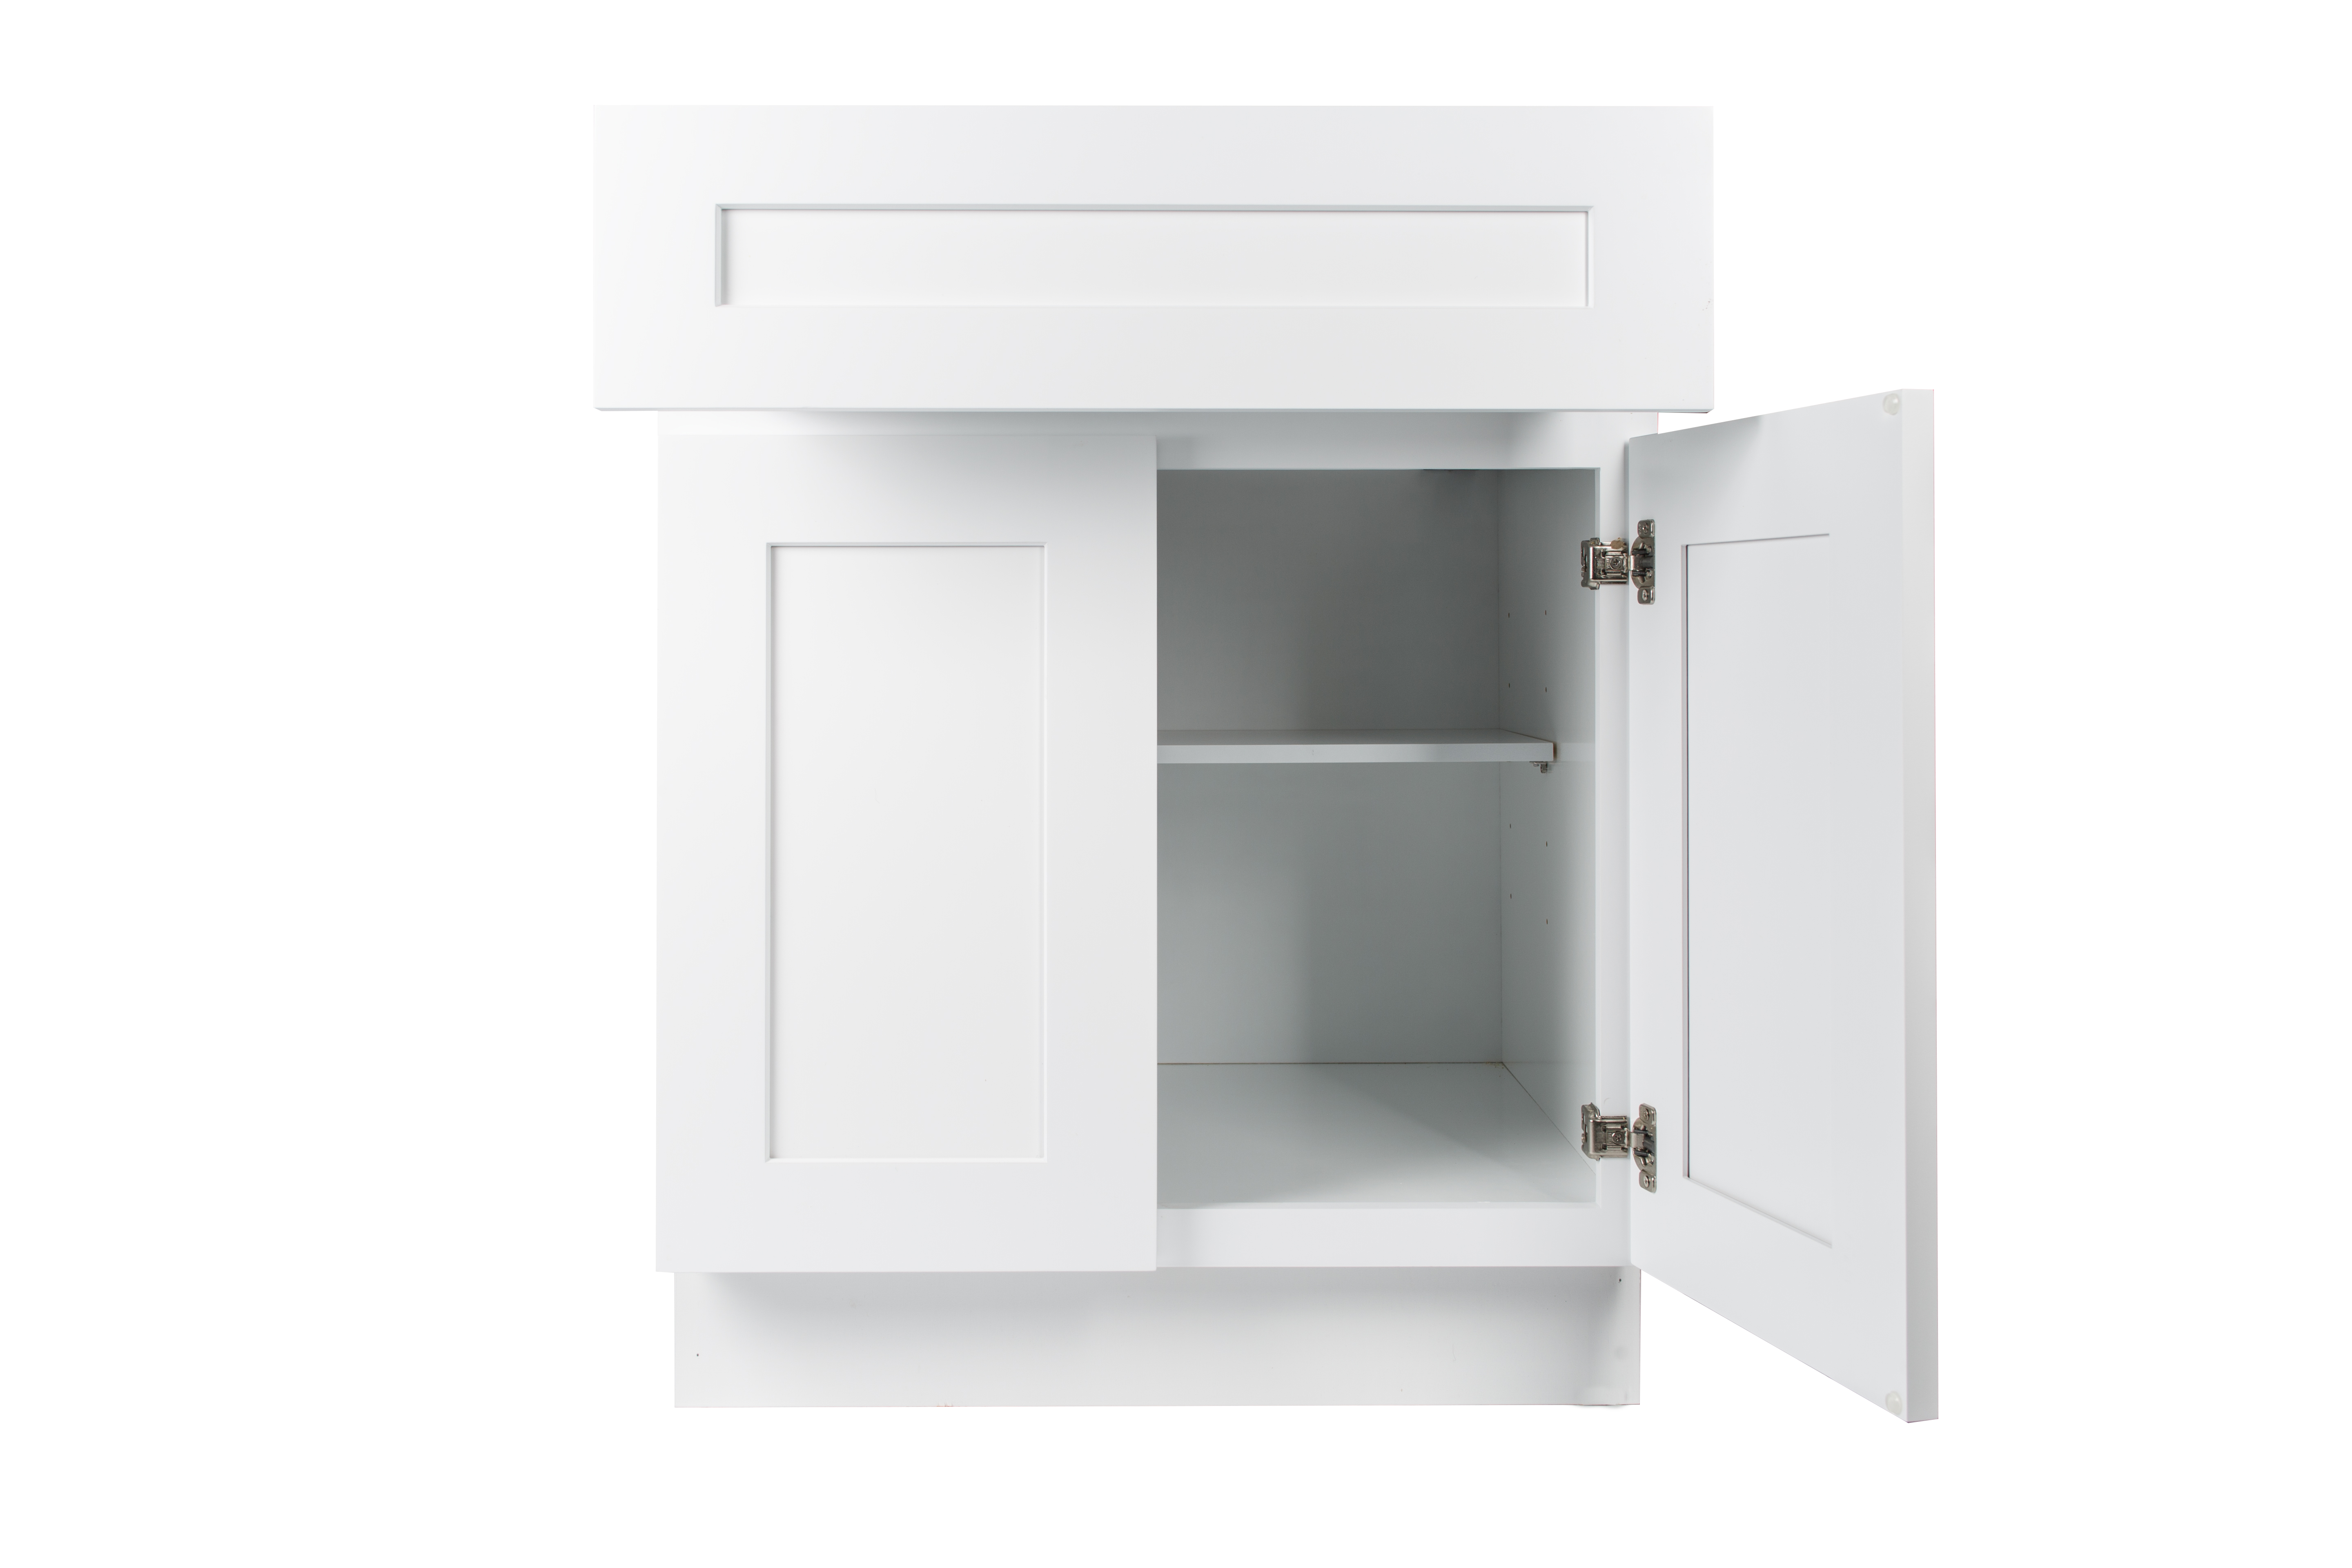 Ready to Assemble 27Wx34.5Hx24D in. Shaker Base Cabinet with 2 Door and 1 Drawer in White